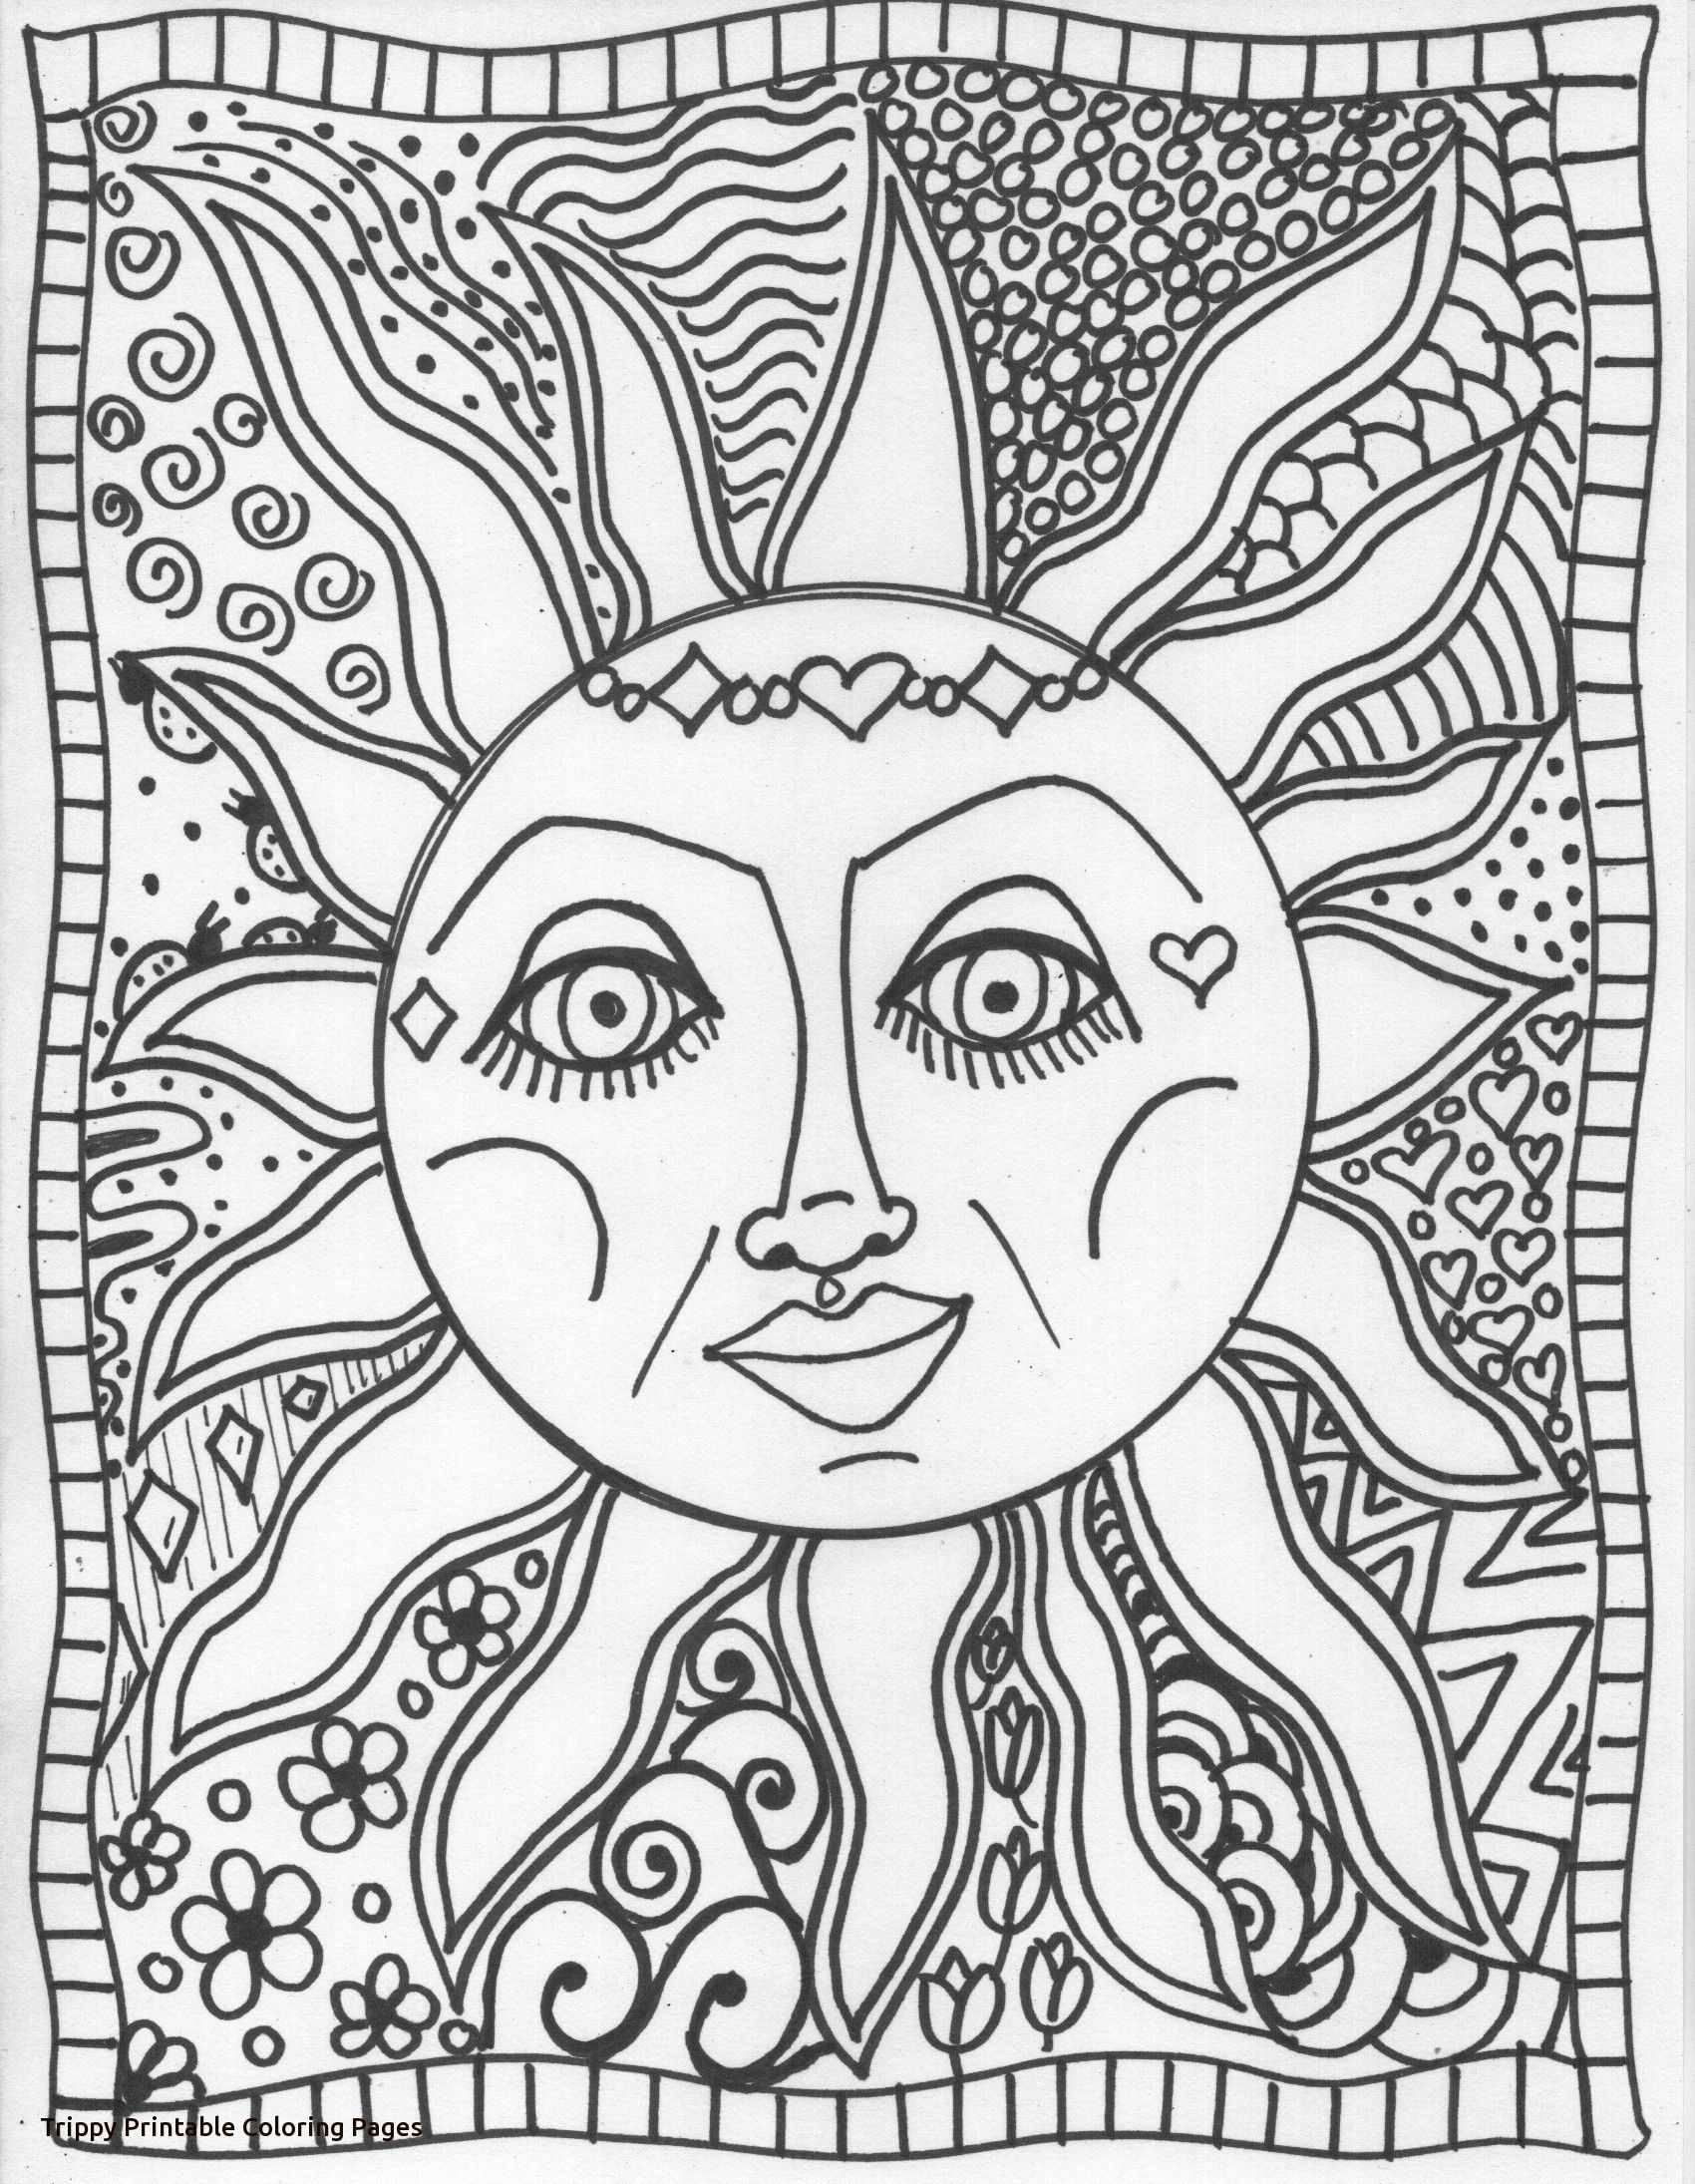 Trippy Coloring Pages | Inspirational quotes | Pinterest | Kids ...